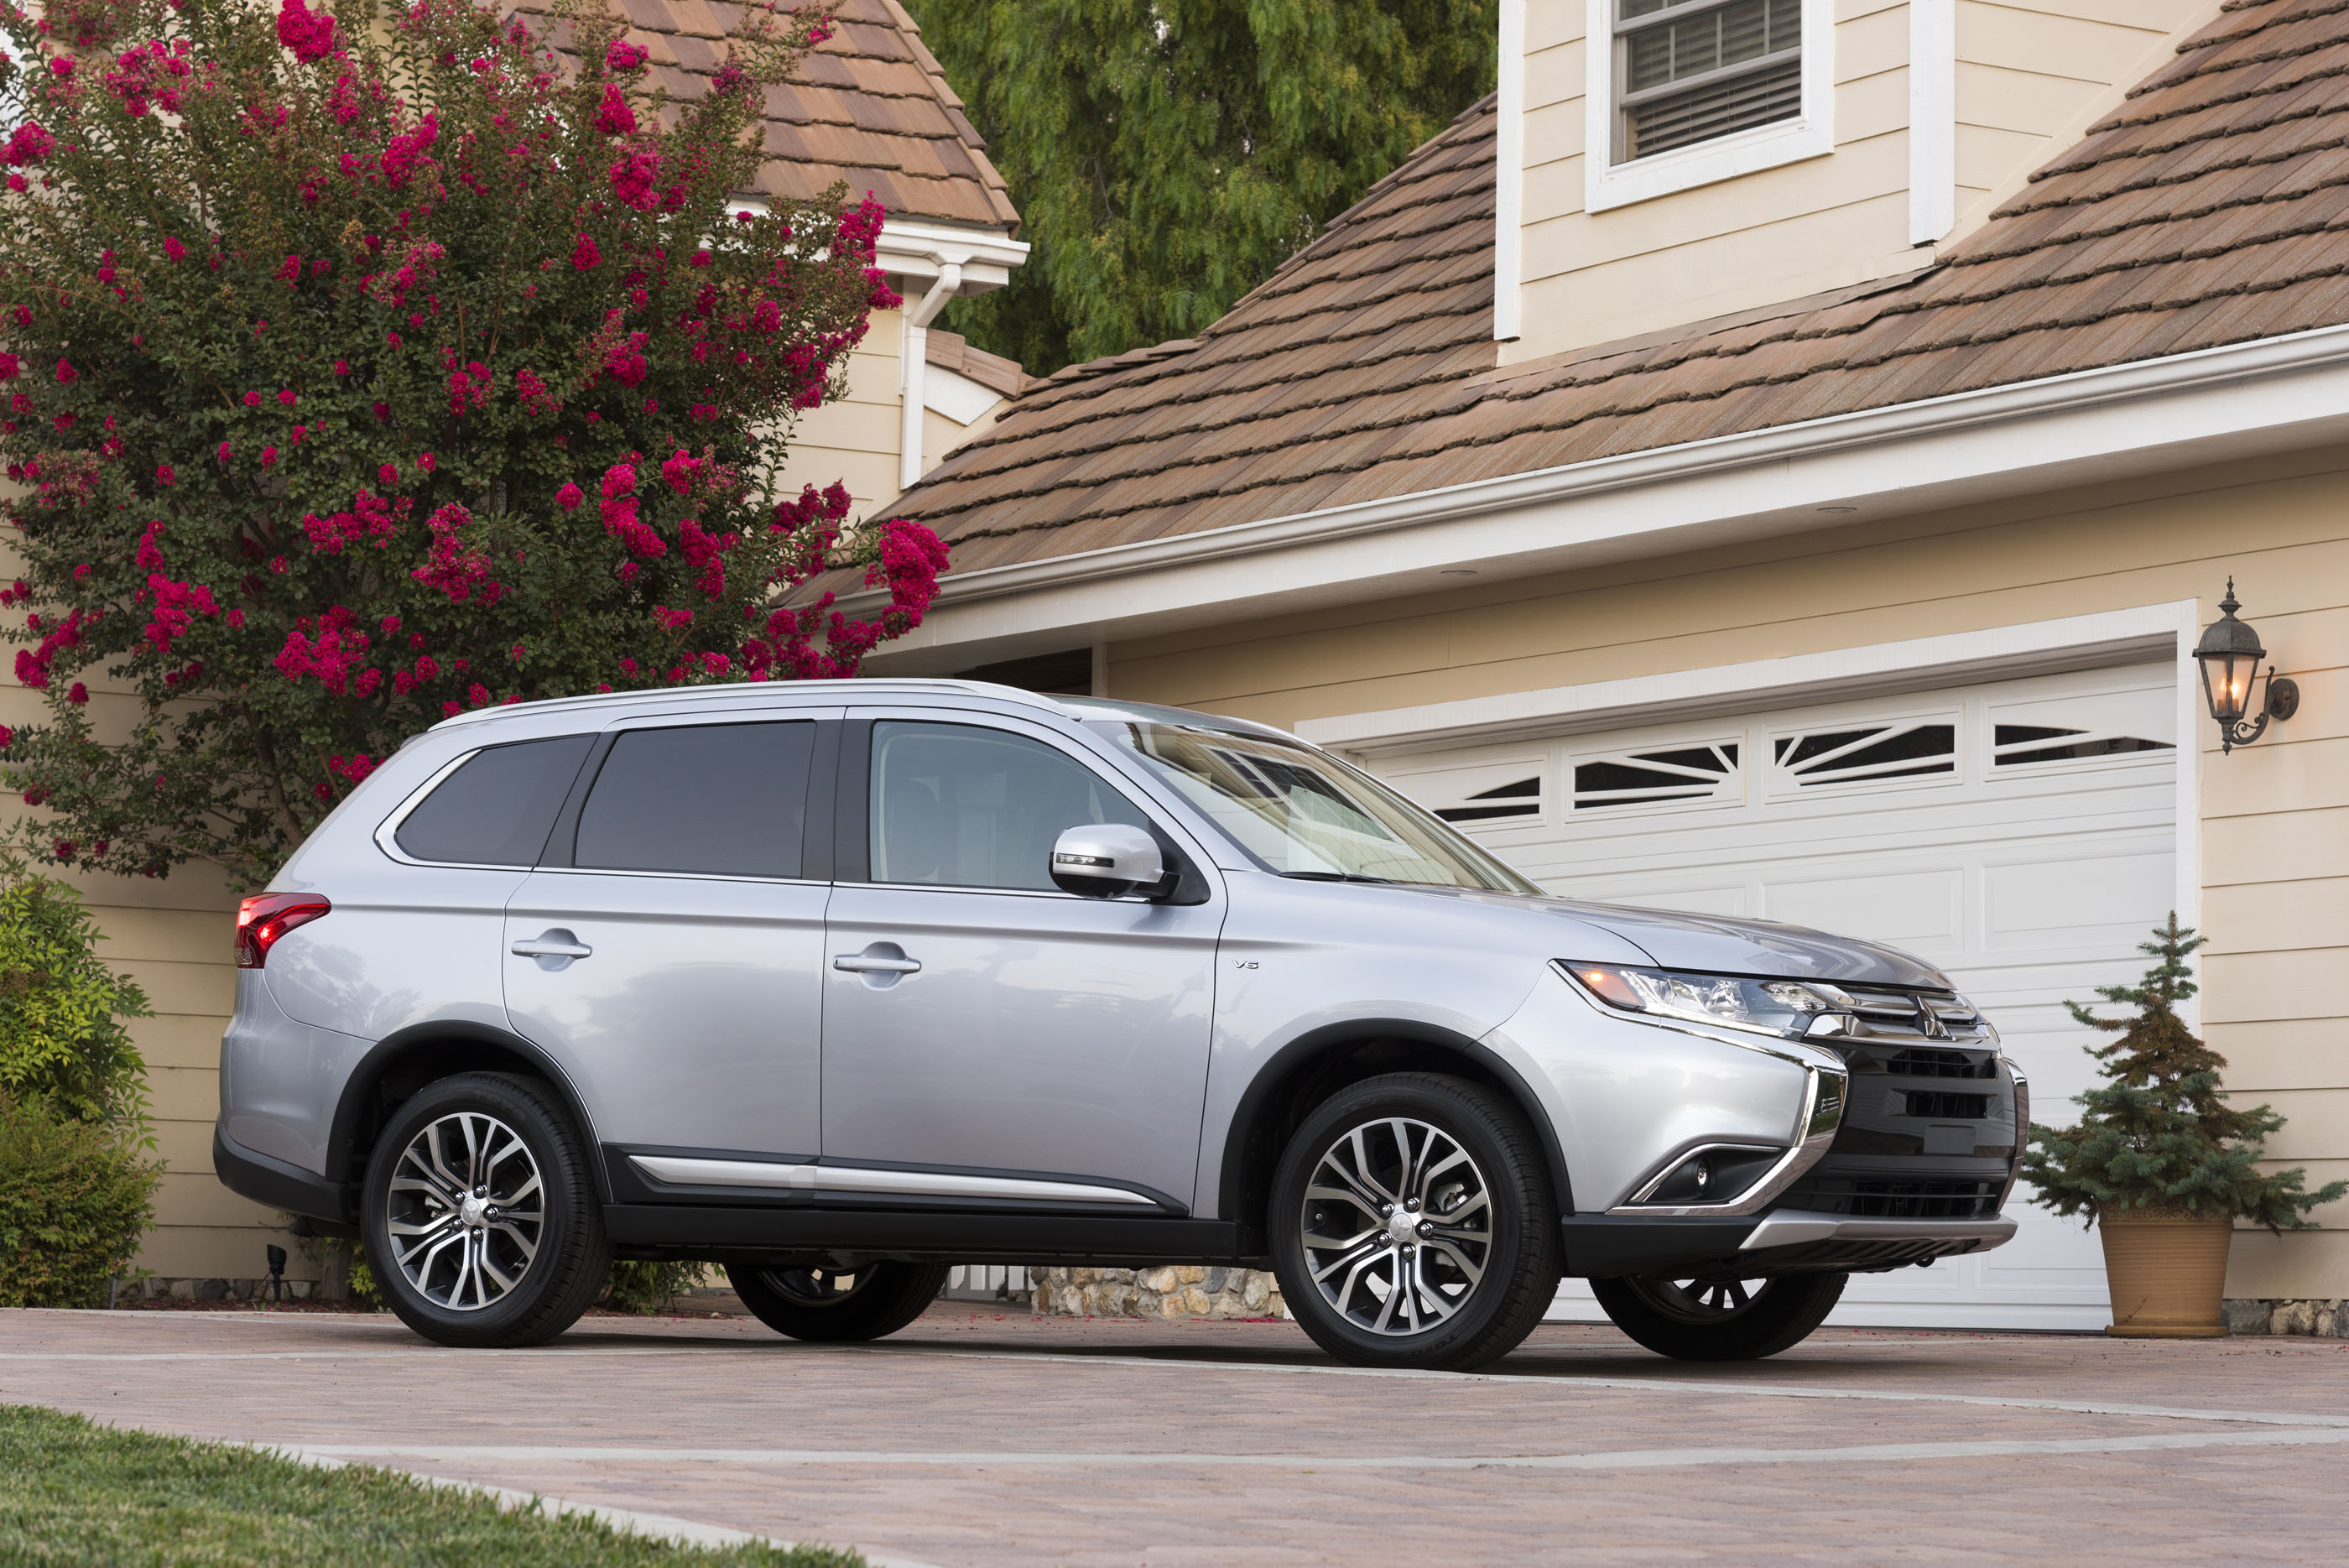 2017 Mitsubishi Outlander Quality Review - The Car Connection